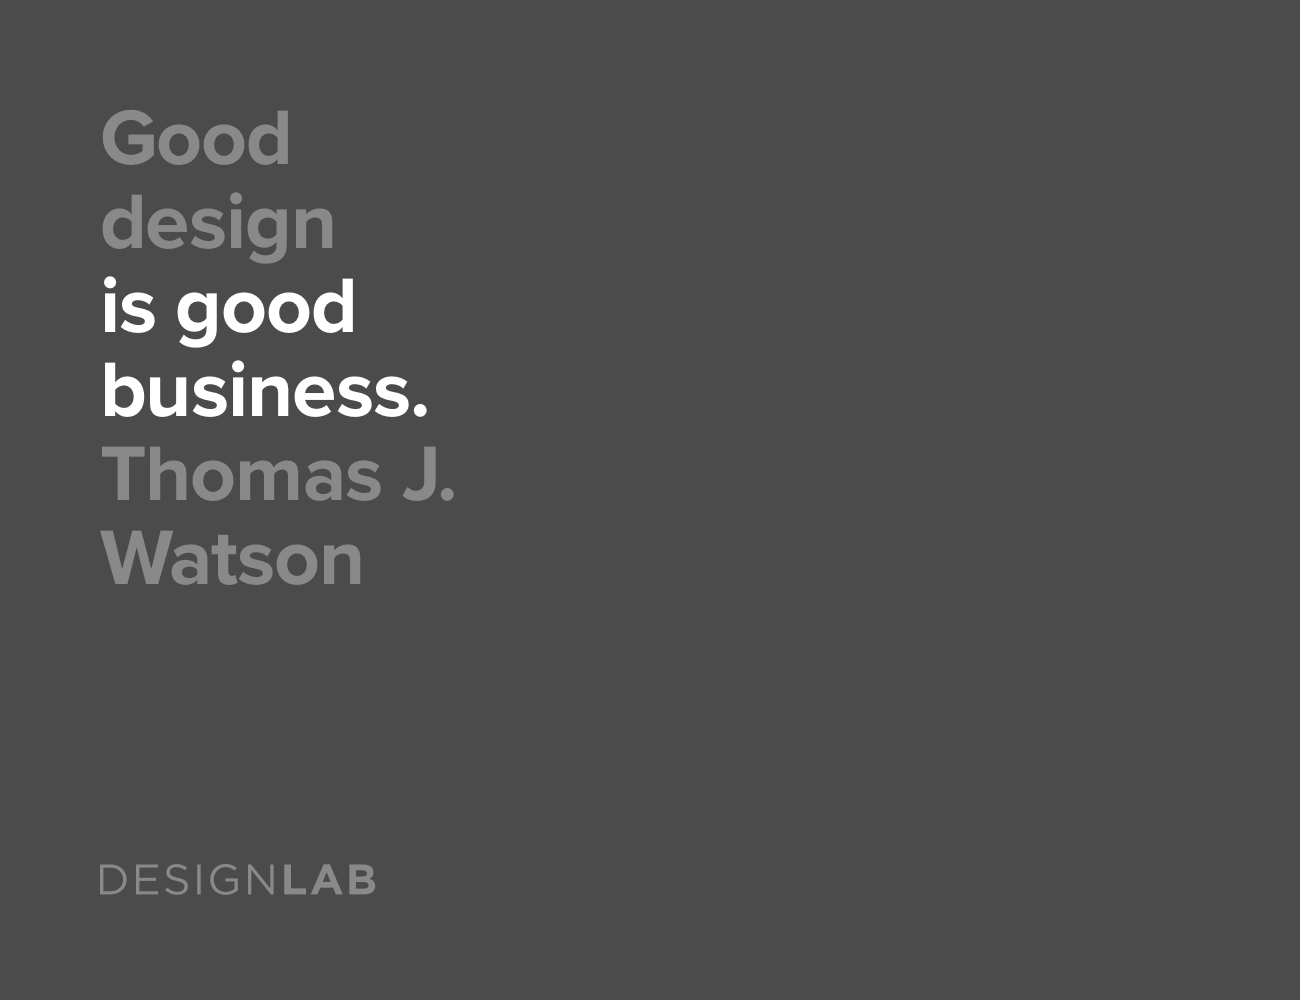 Good design is good business. Thomas J. Watson